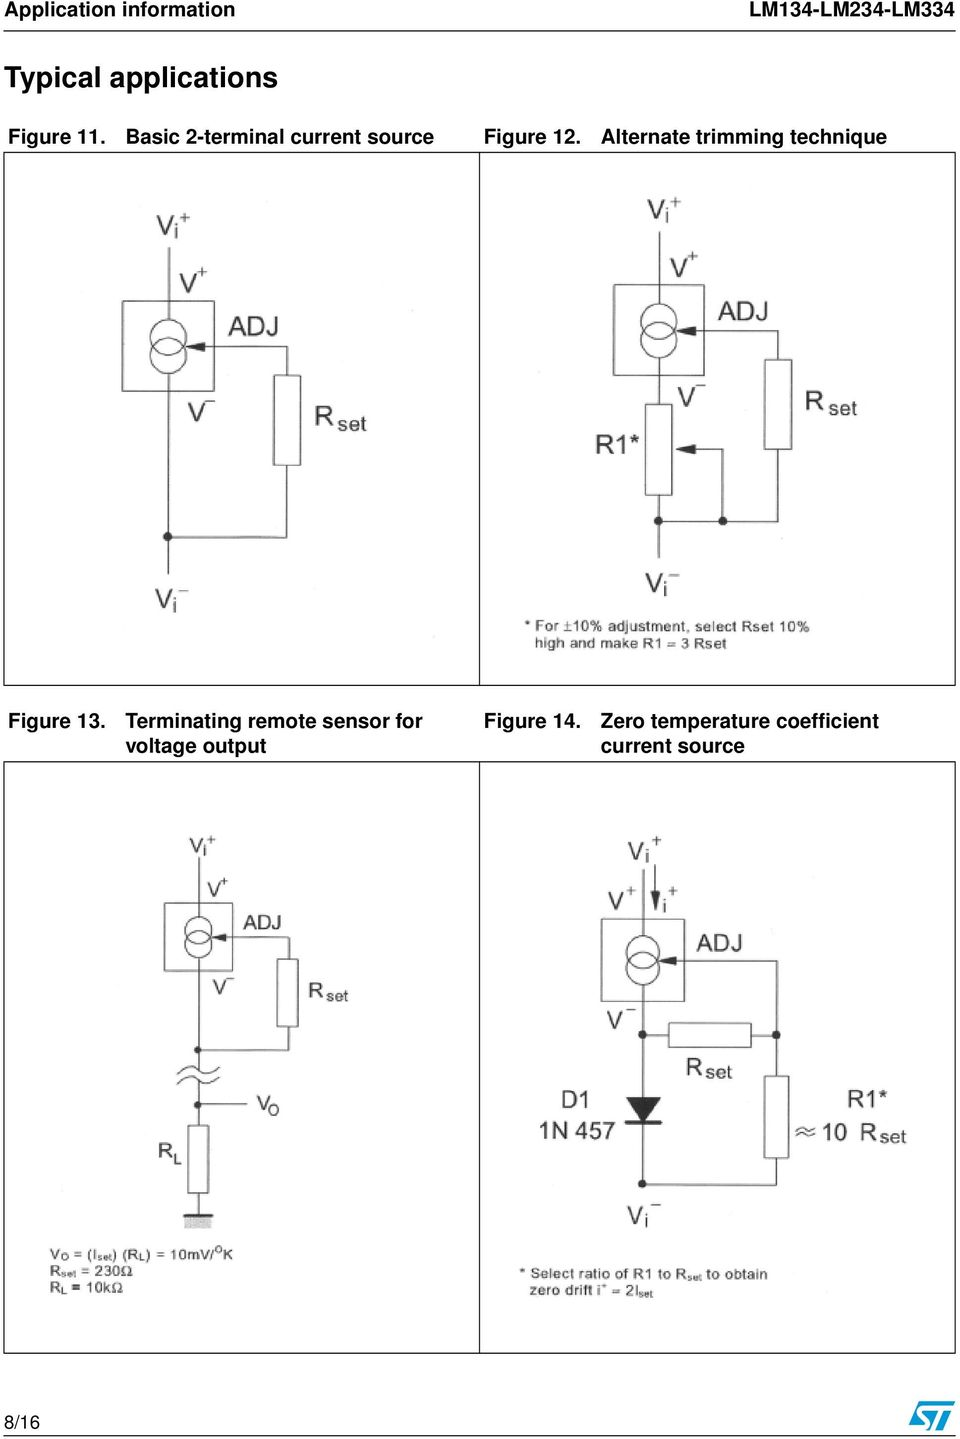 Lm134 Lm234 Lm334 Three Terminal Adjustable Current Sources Bta41 600b Datasheet Application Note Electronic Circuit Projects Alternate Trimming Technique Figure 13